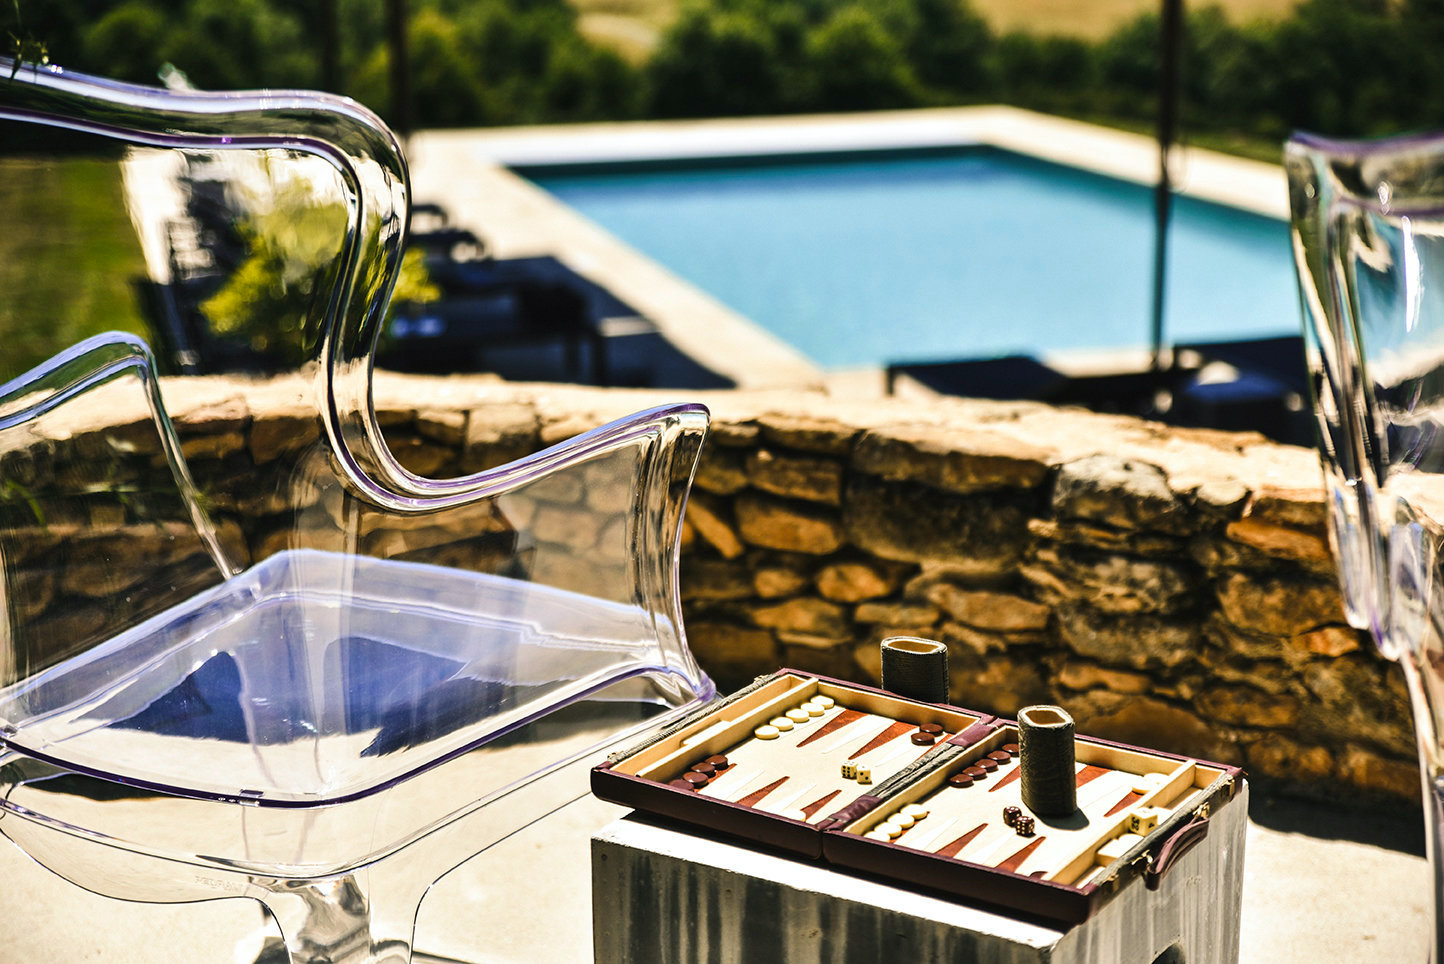 Perspex armchairs by Pedrali with a game of backgammon on a terrace overlooking a private pool and Dordogne countryside